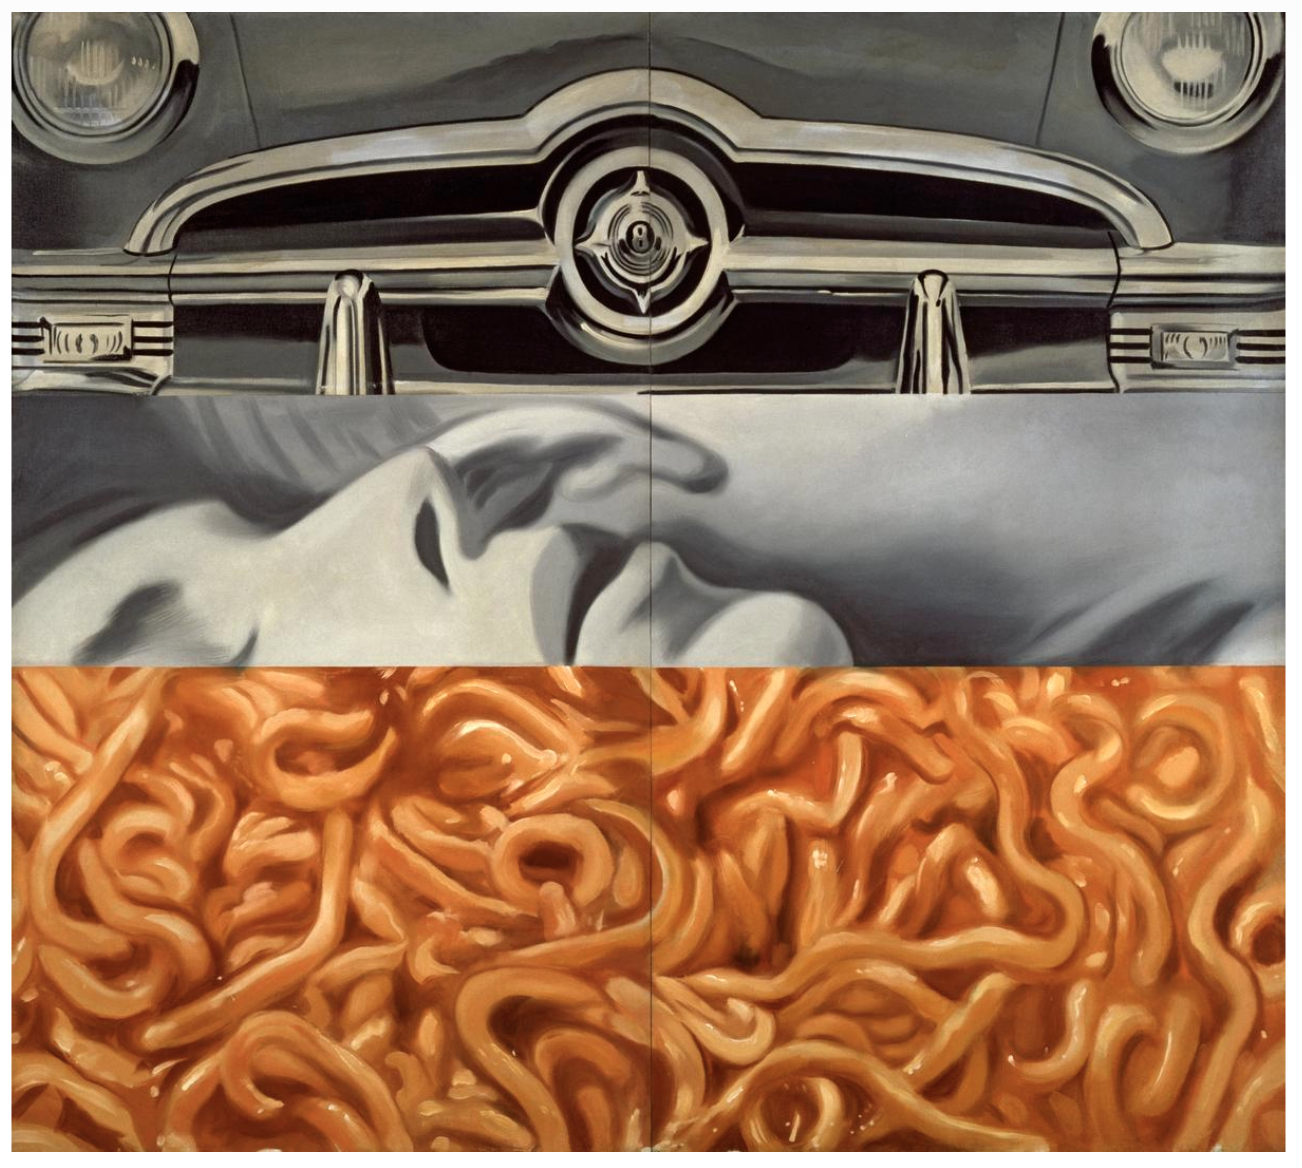 James Rosenquist, I Love You with My Ford,1961. Oil on canvas, 210.2 x 237.5 cm.